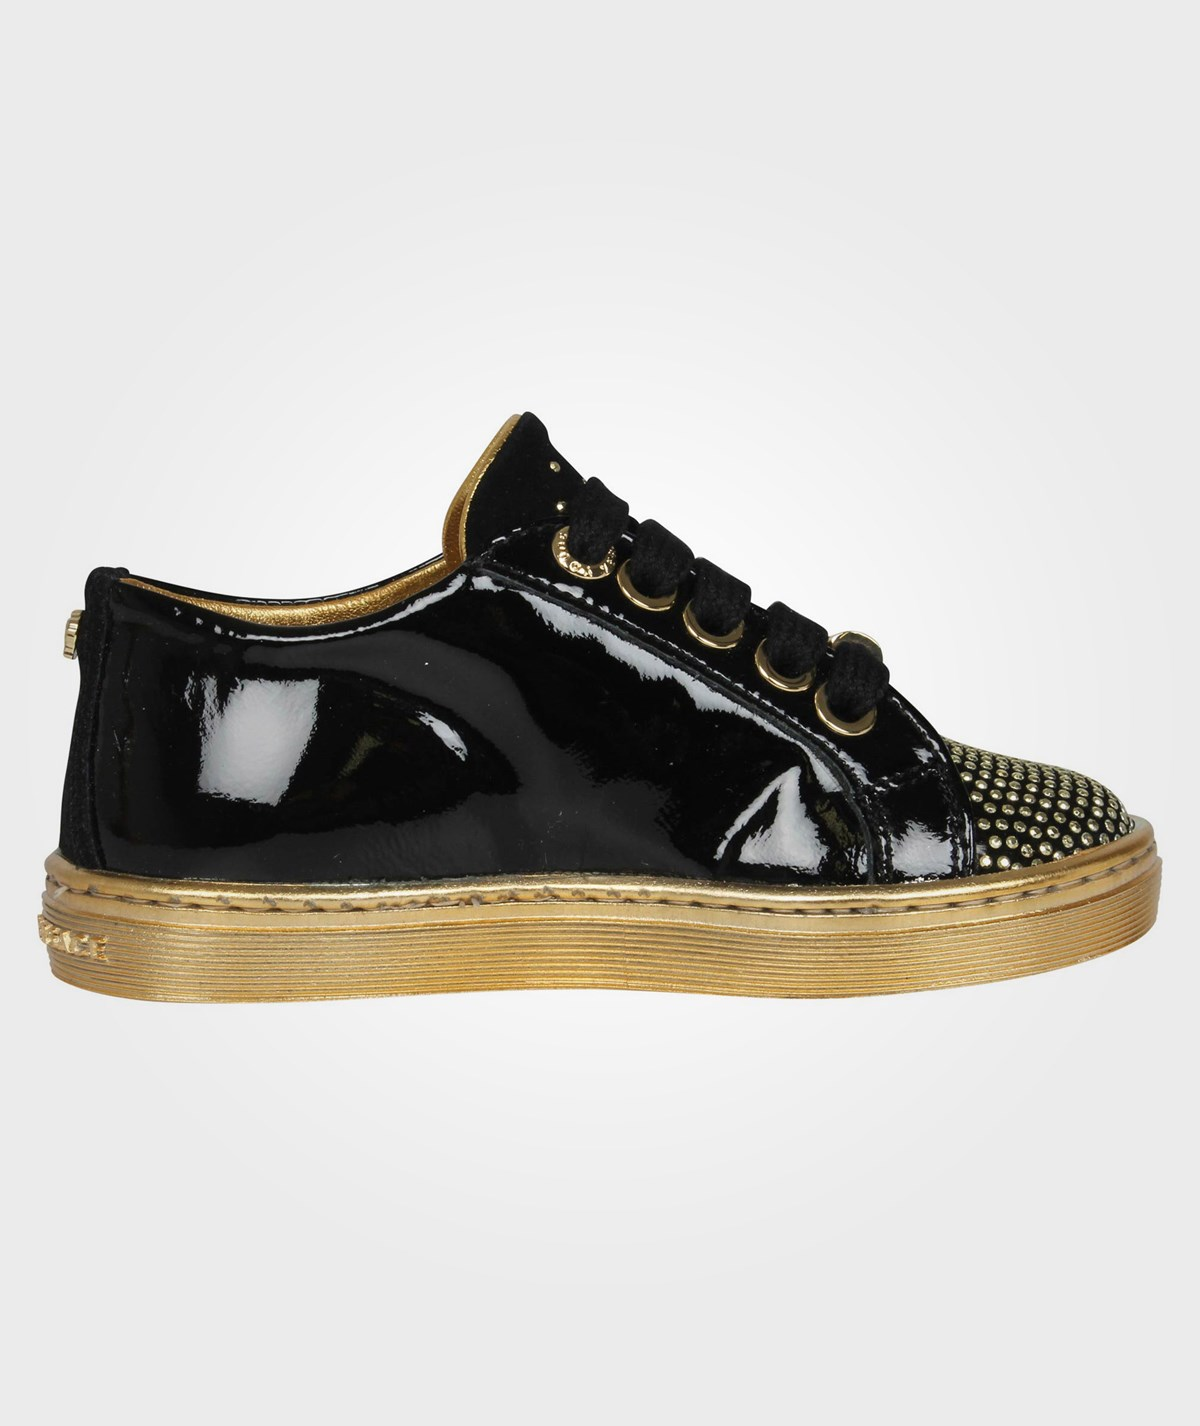 f879c25fd5ac7e Yükle (1200x1426)Young shoes pictures free downloadYoung Versace - Shoes  Black - Babyshop.dk.